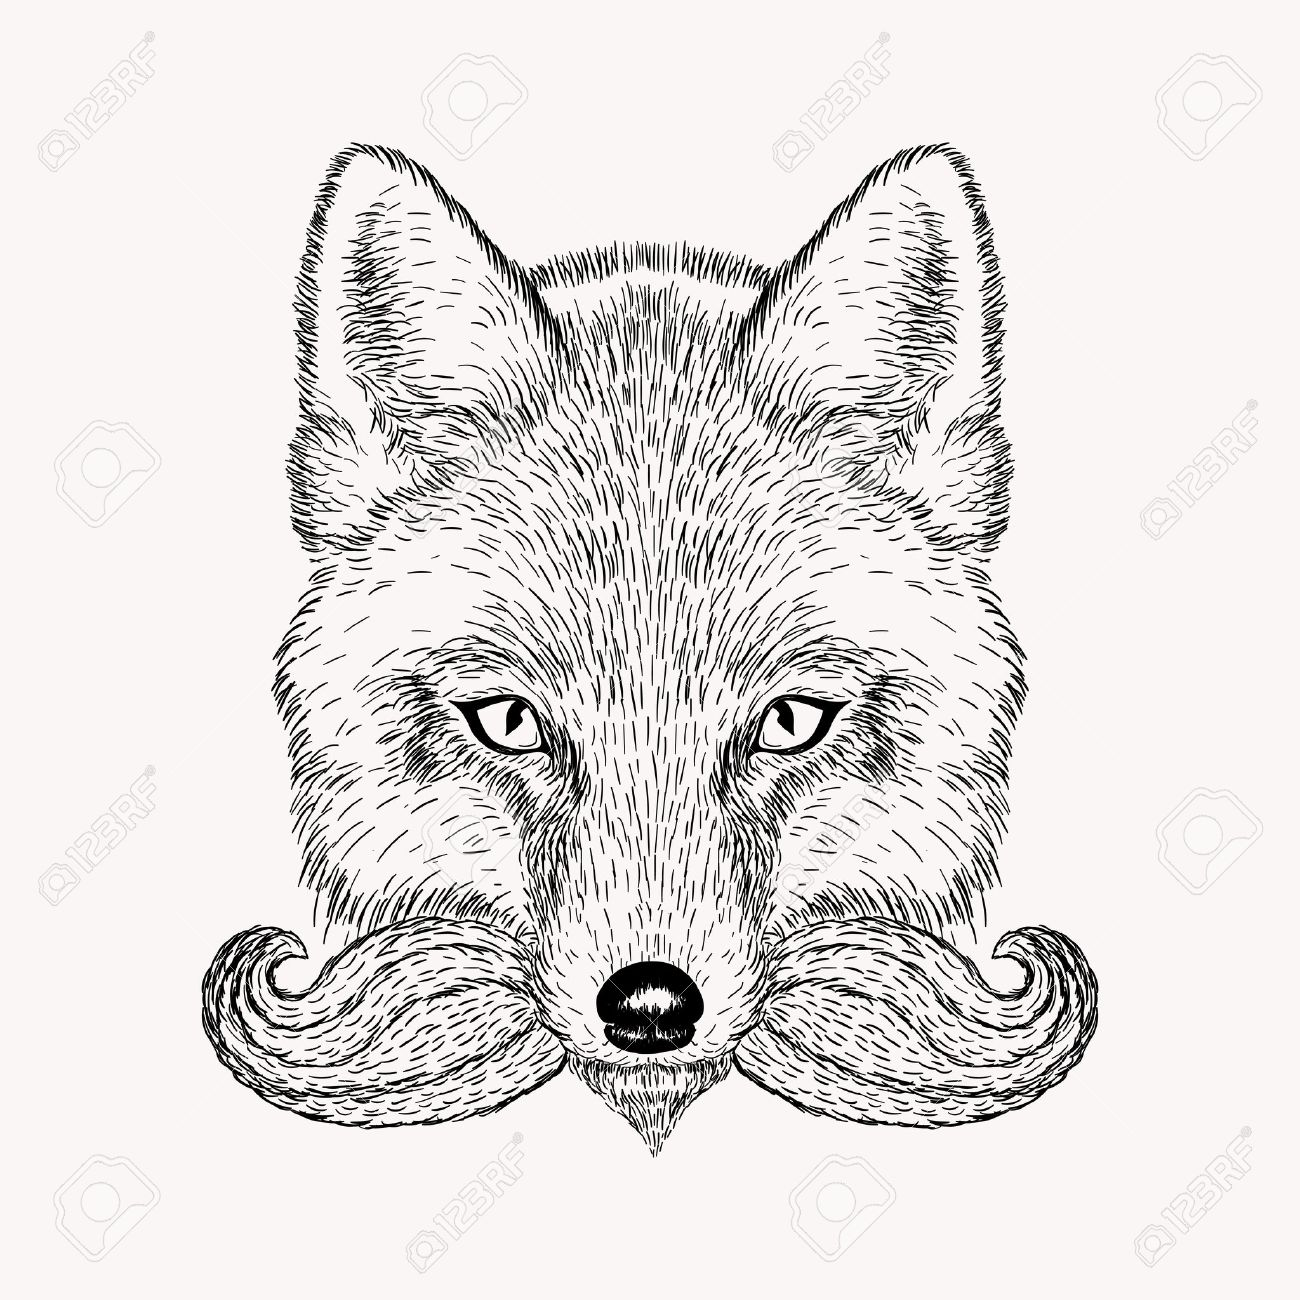 1300x1300 Sketch Fox With A Beard And Moustache. Hand Drawn Vector